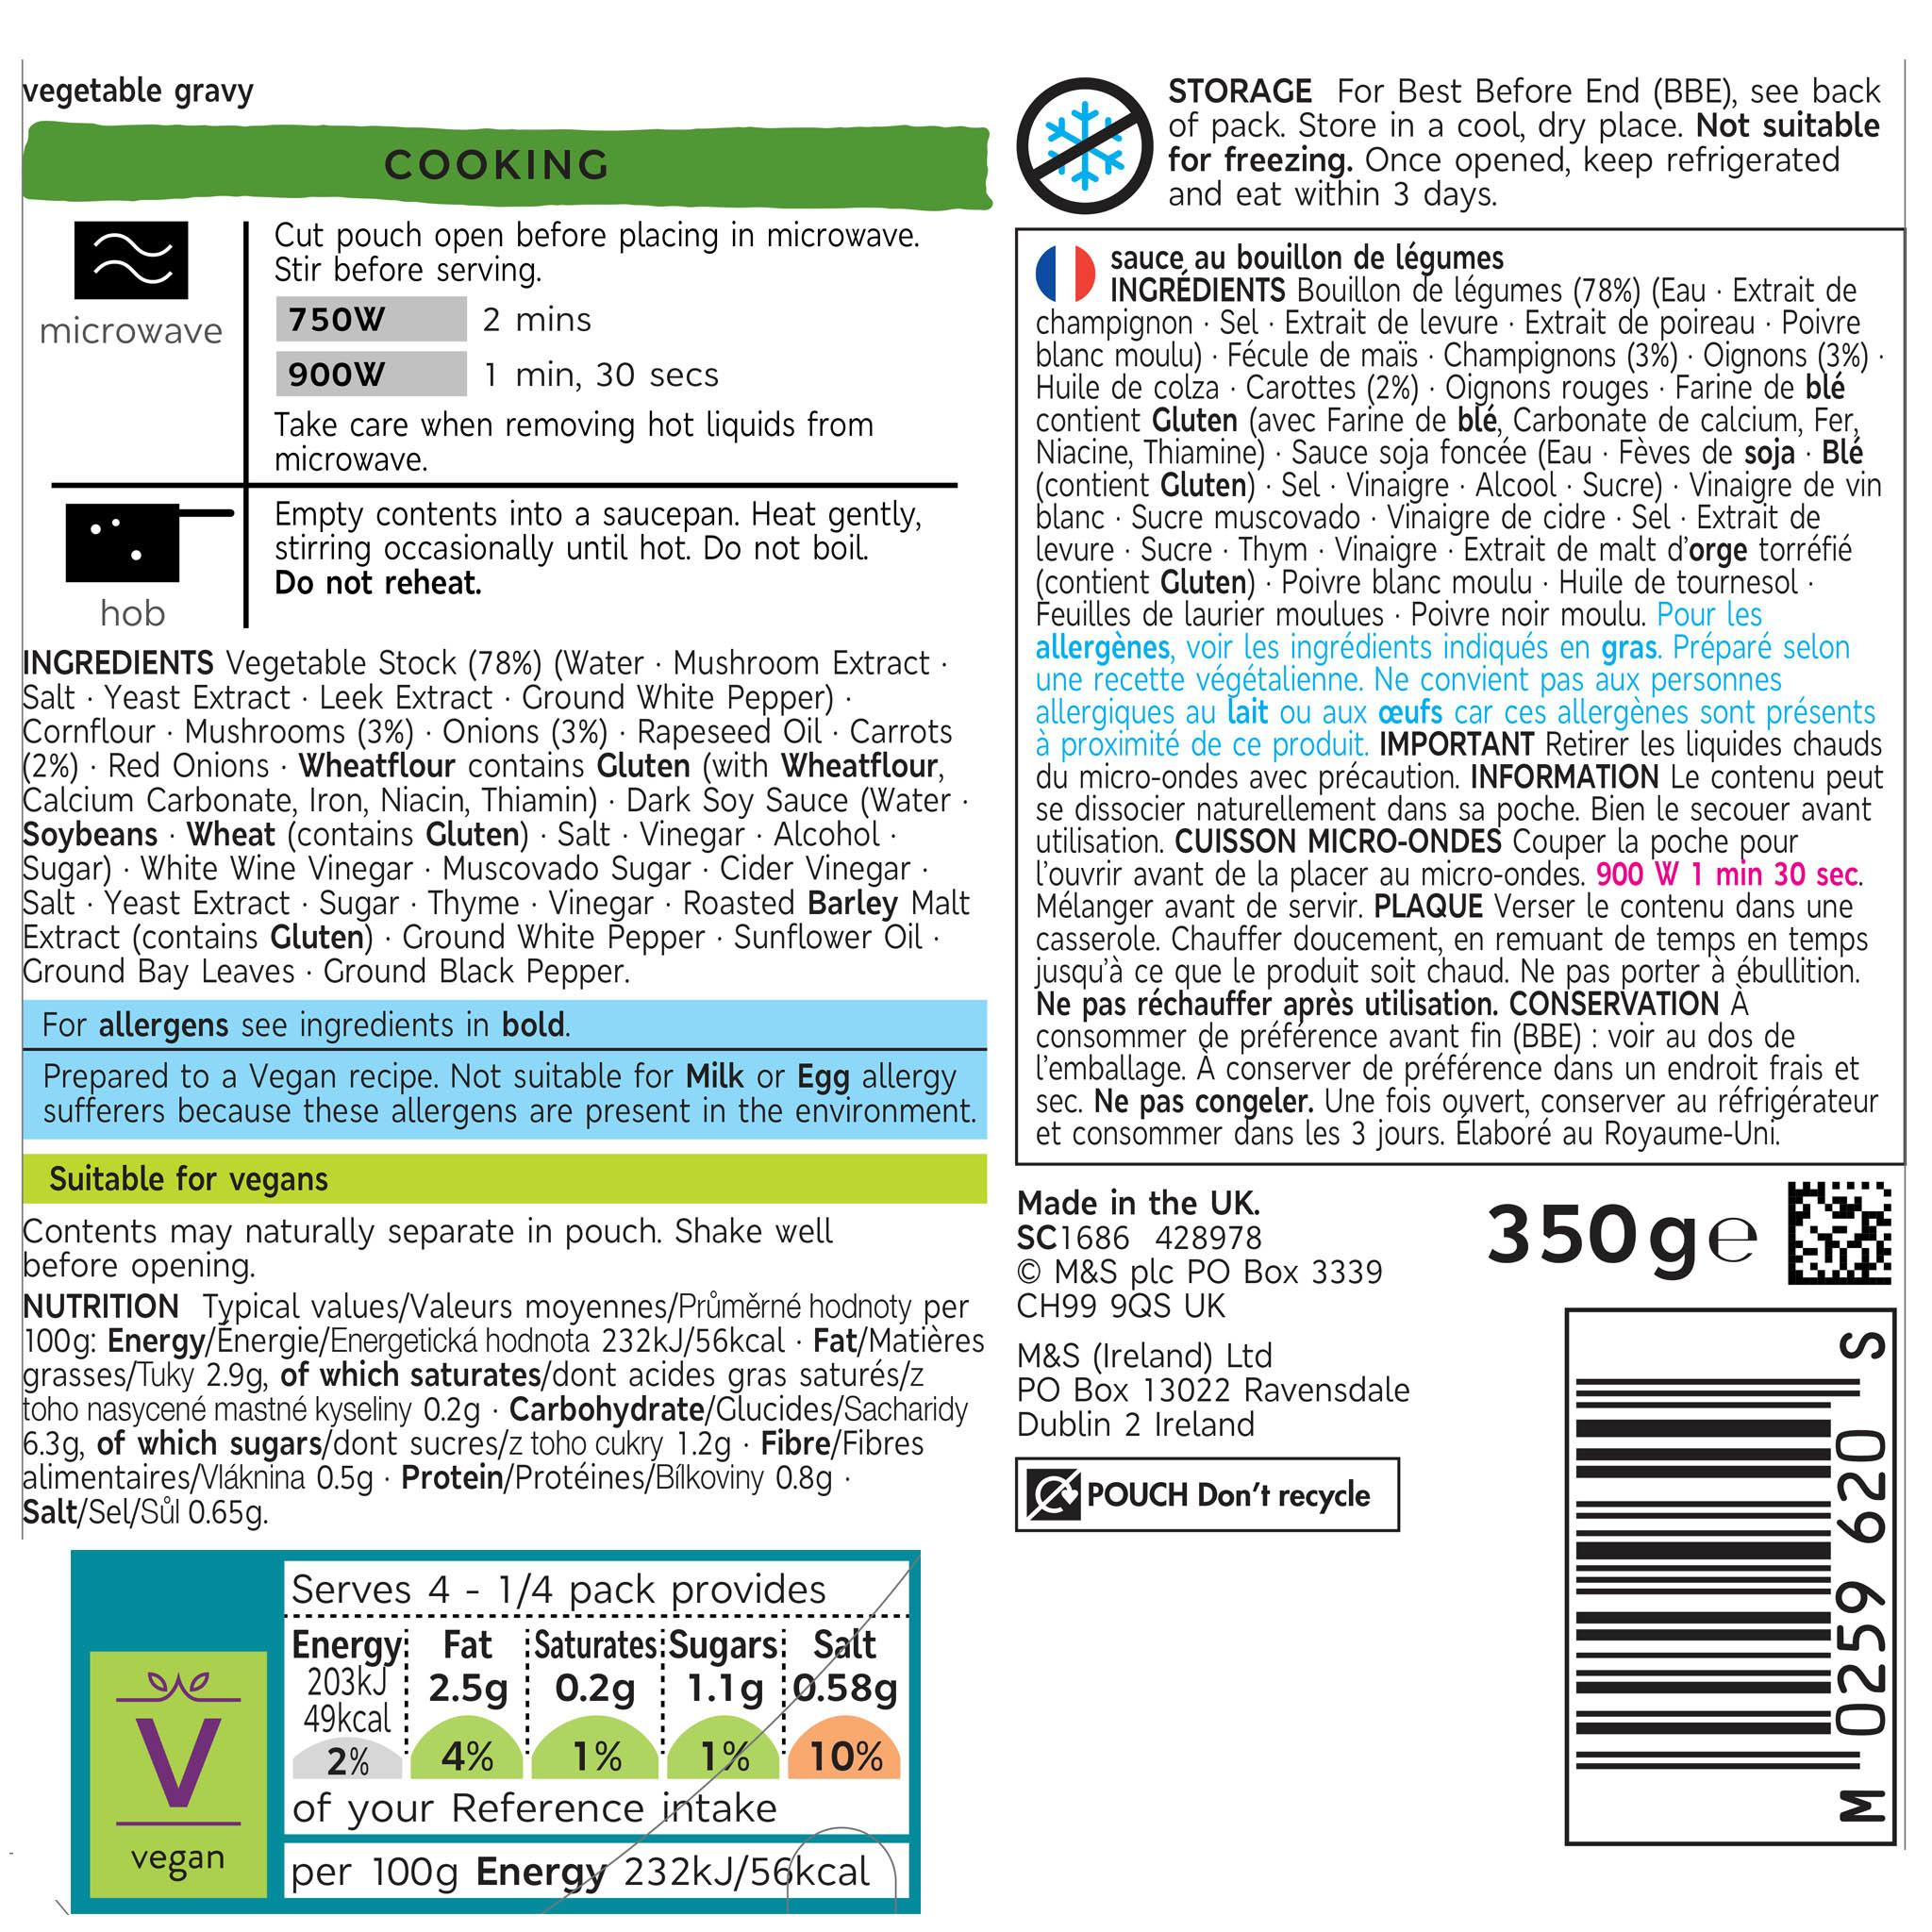 Plant Kitchen Vegetable Gravy 350g Label